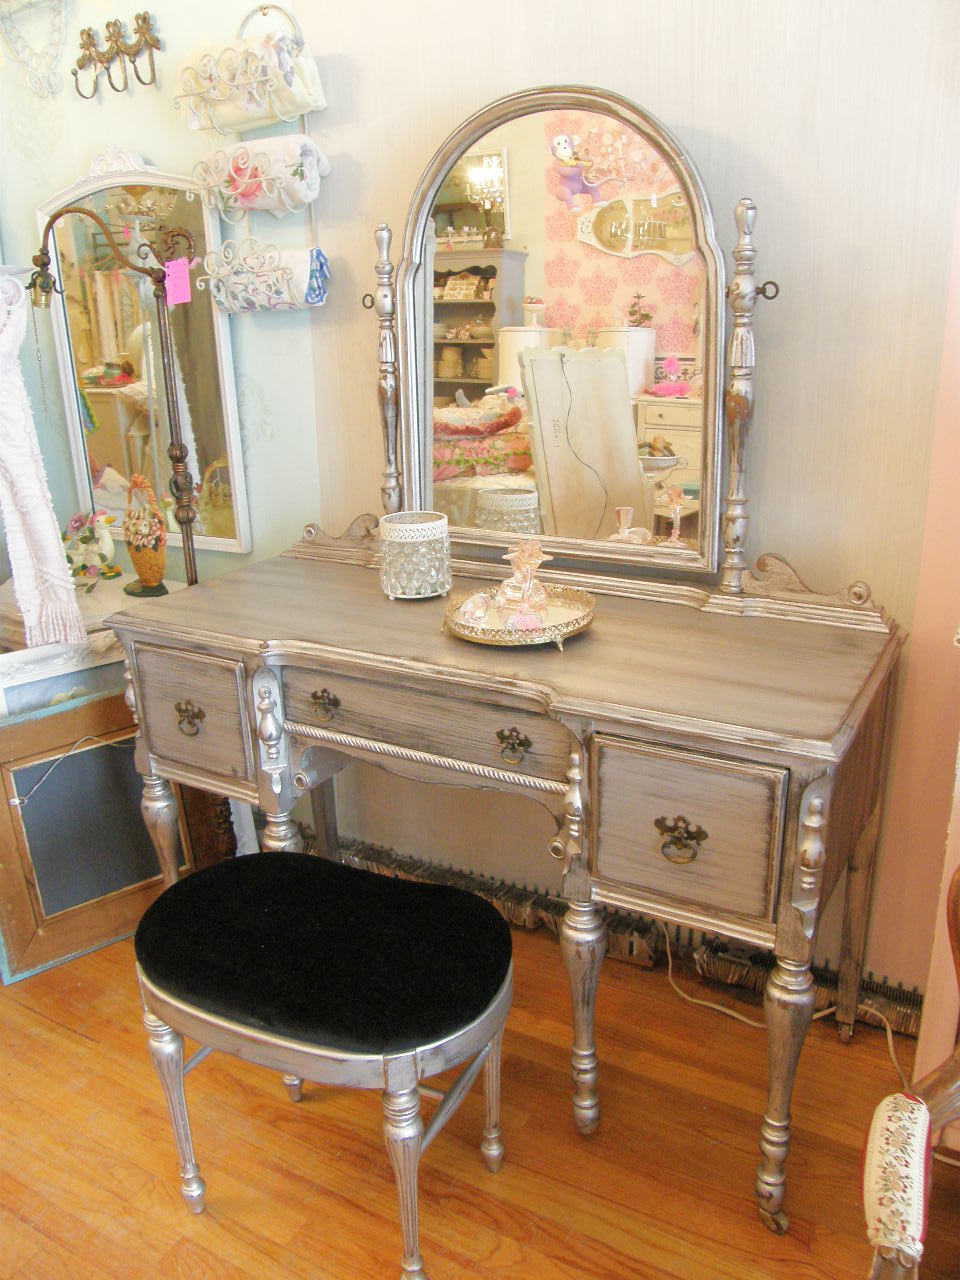 Vintage chic furniture schenectady ny oooh la la silver for Silver vanity table